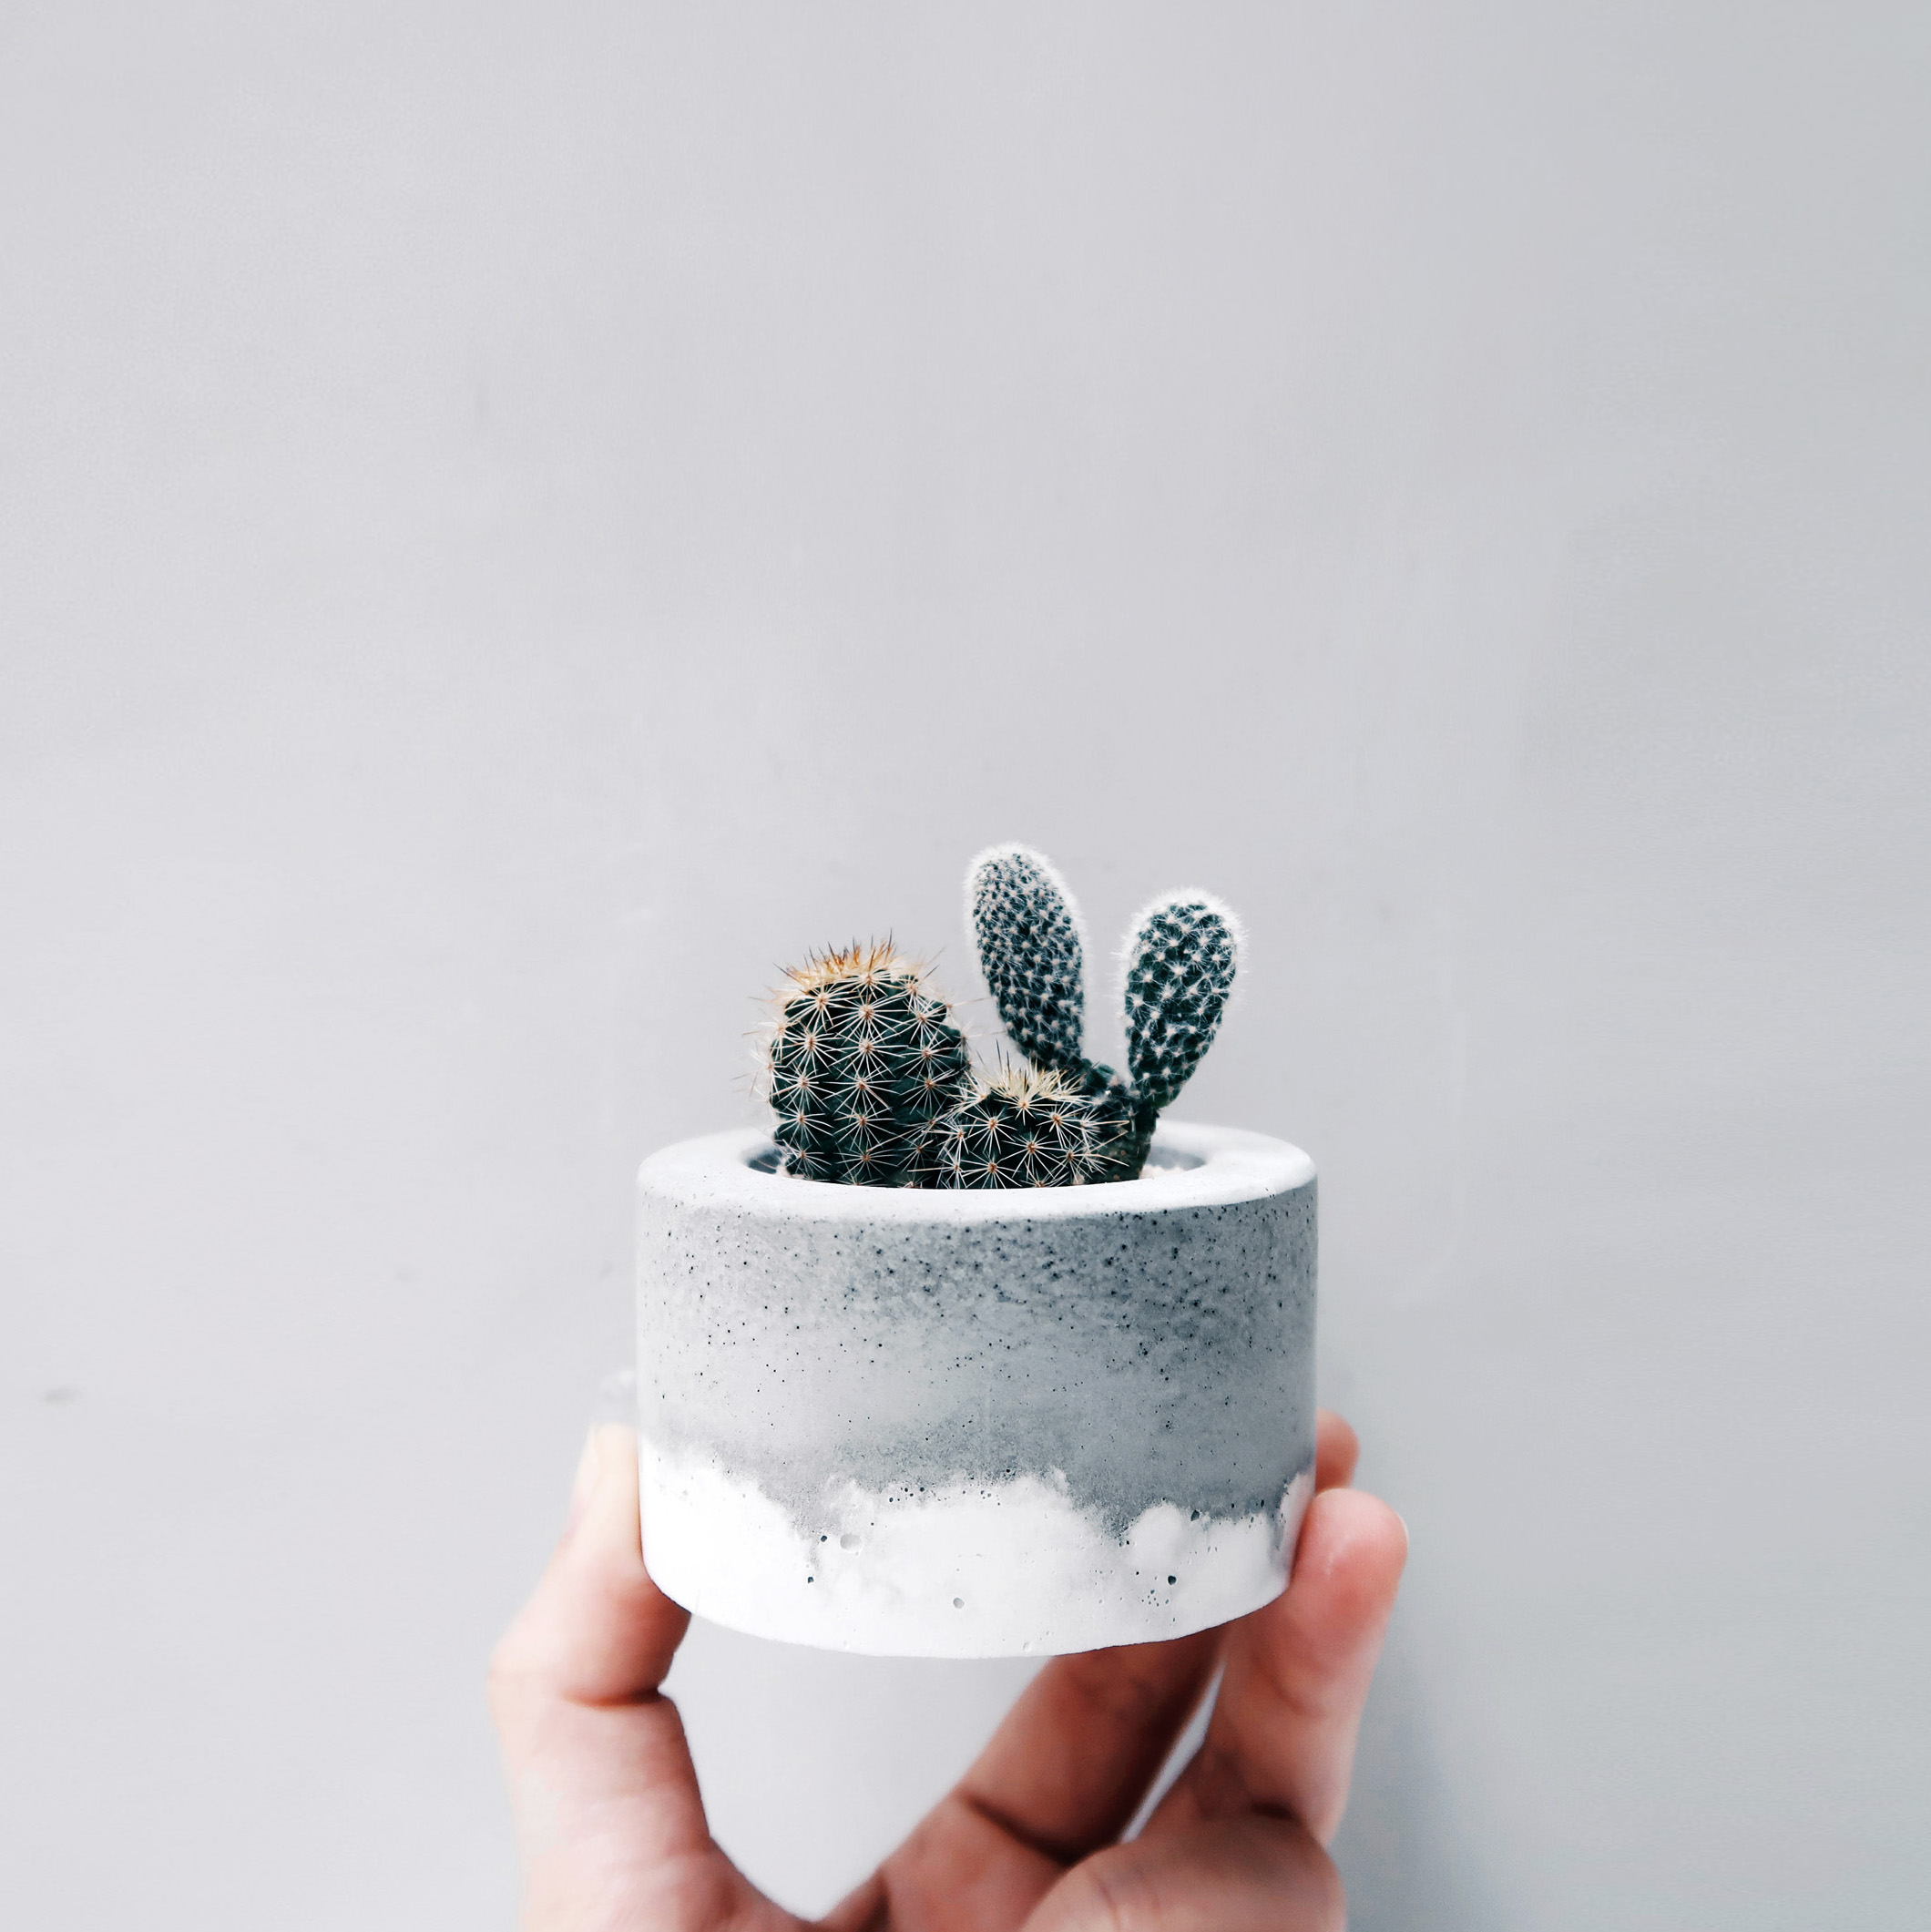 LITTLE CAKE 小圓蛋糕多肉鮮奶油水泥盆栽 / Cream layer Concrete planter